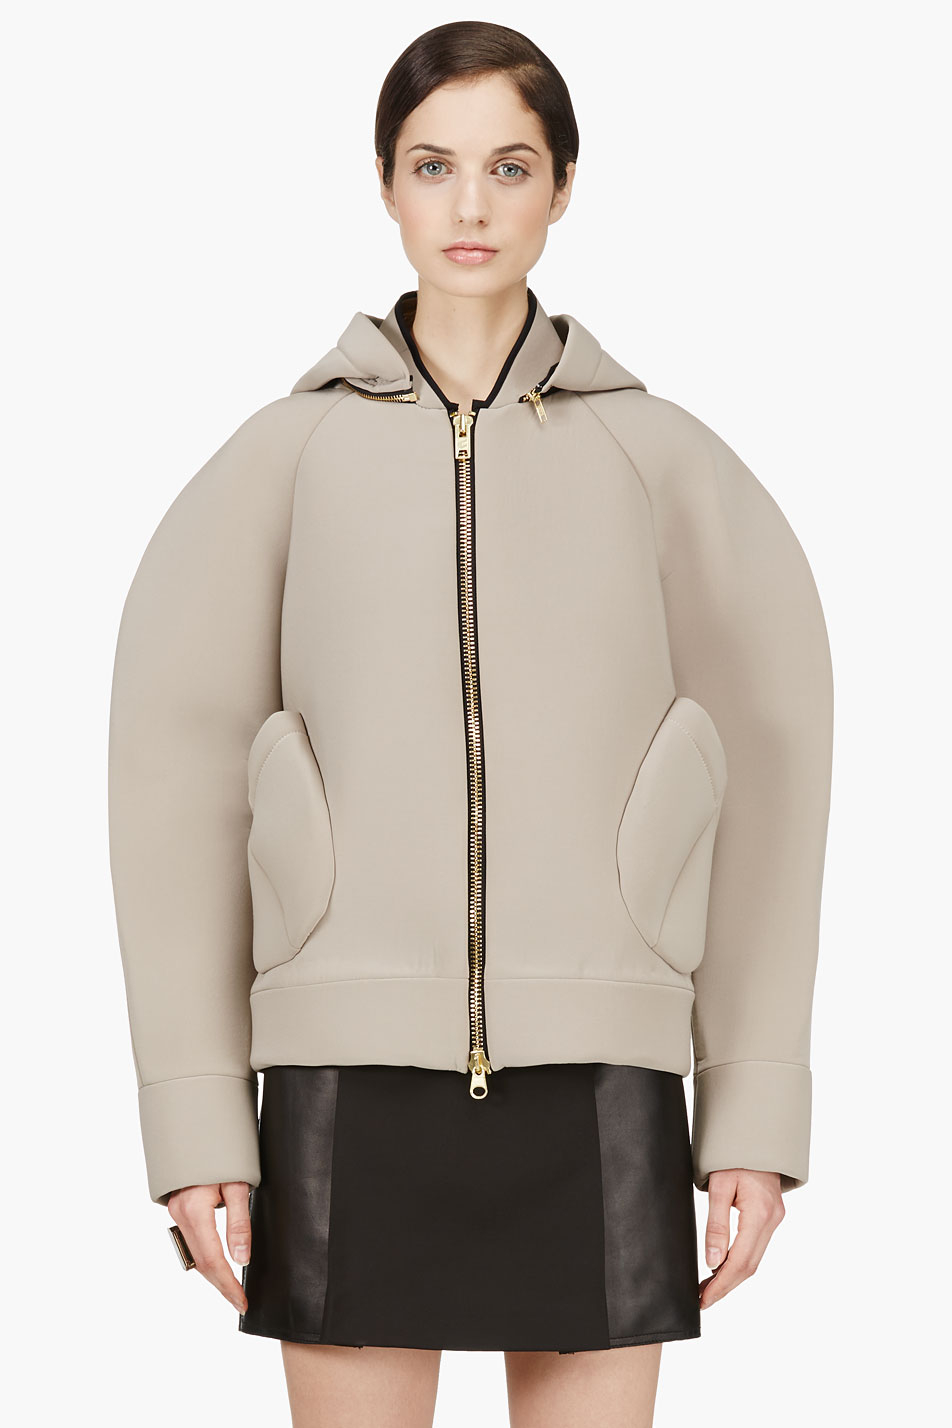 Denis gagnon Beige Neoprene Bomber Jacket in Natural | Lyst